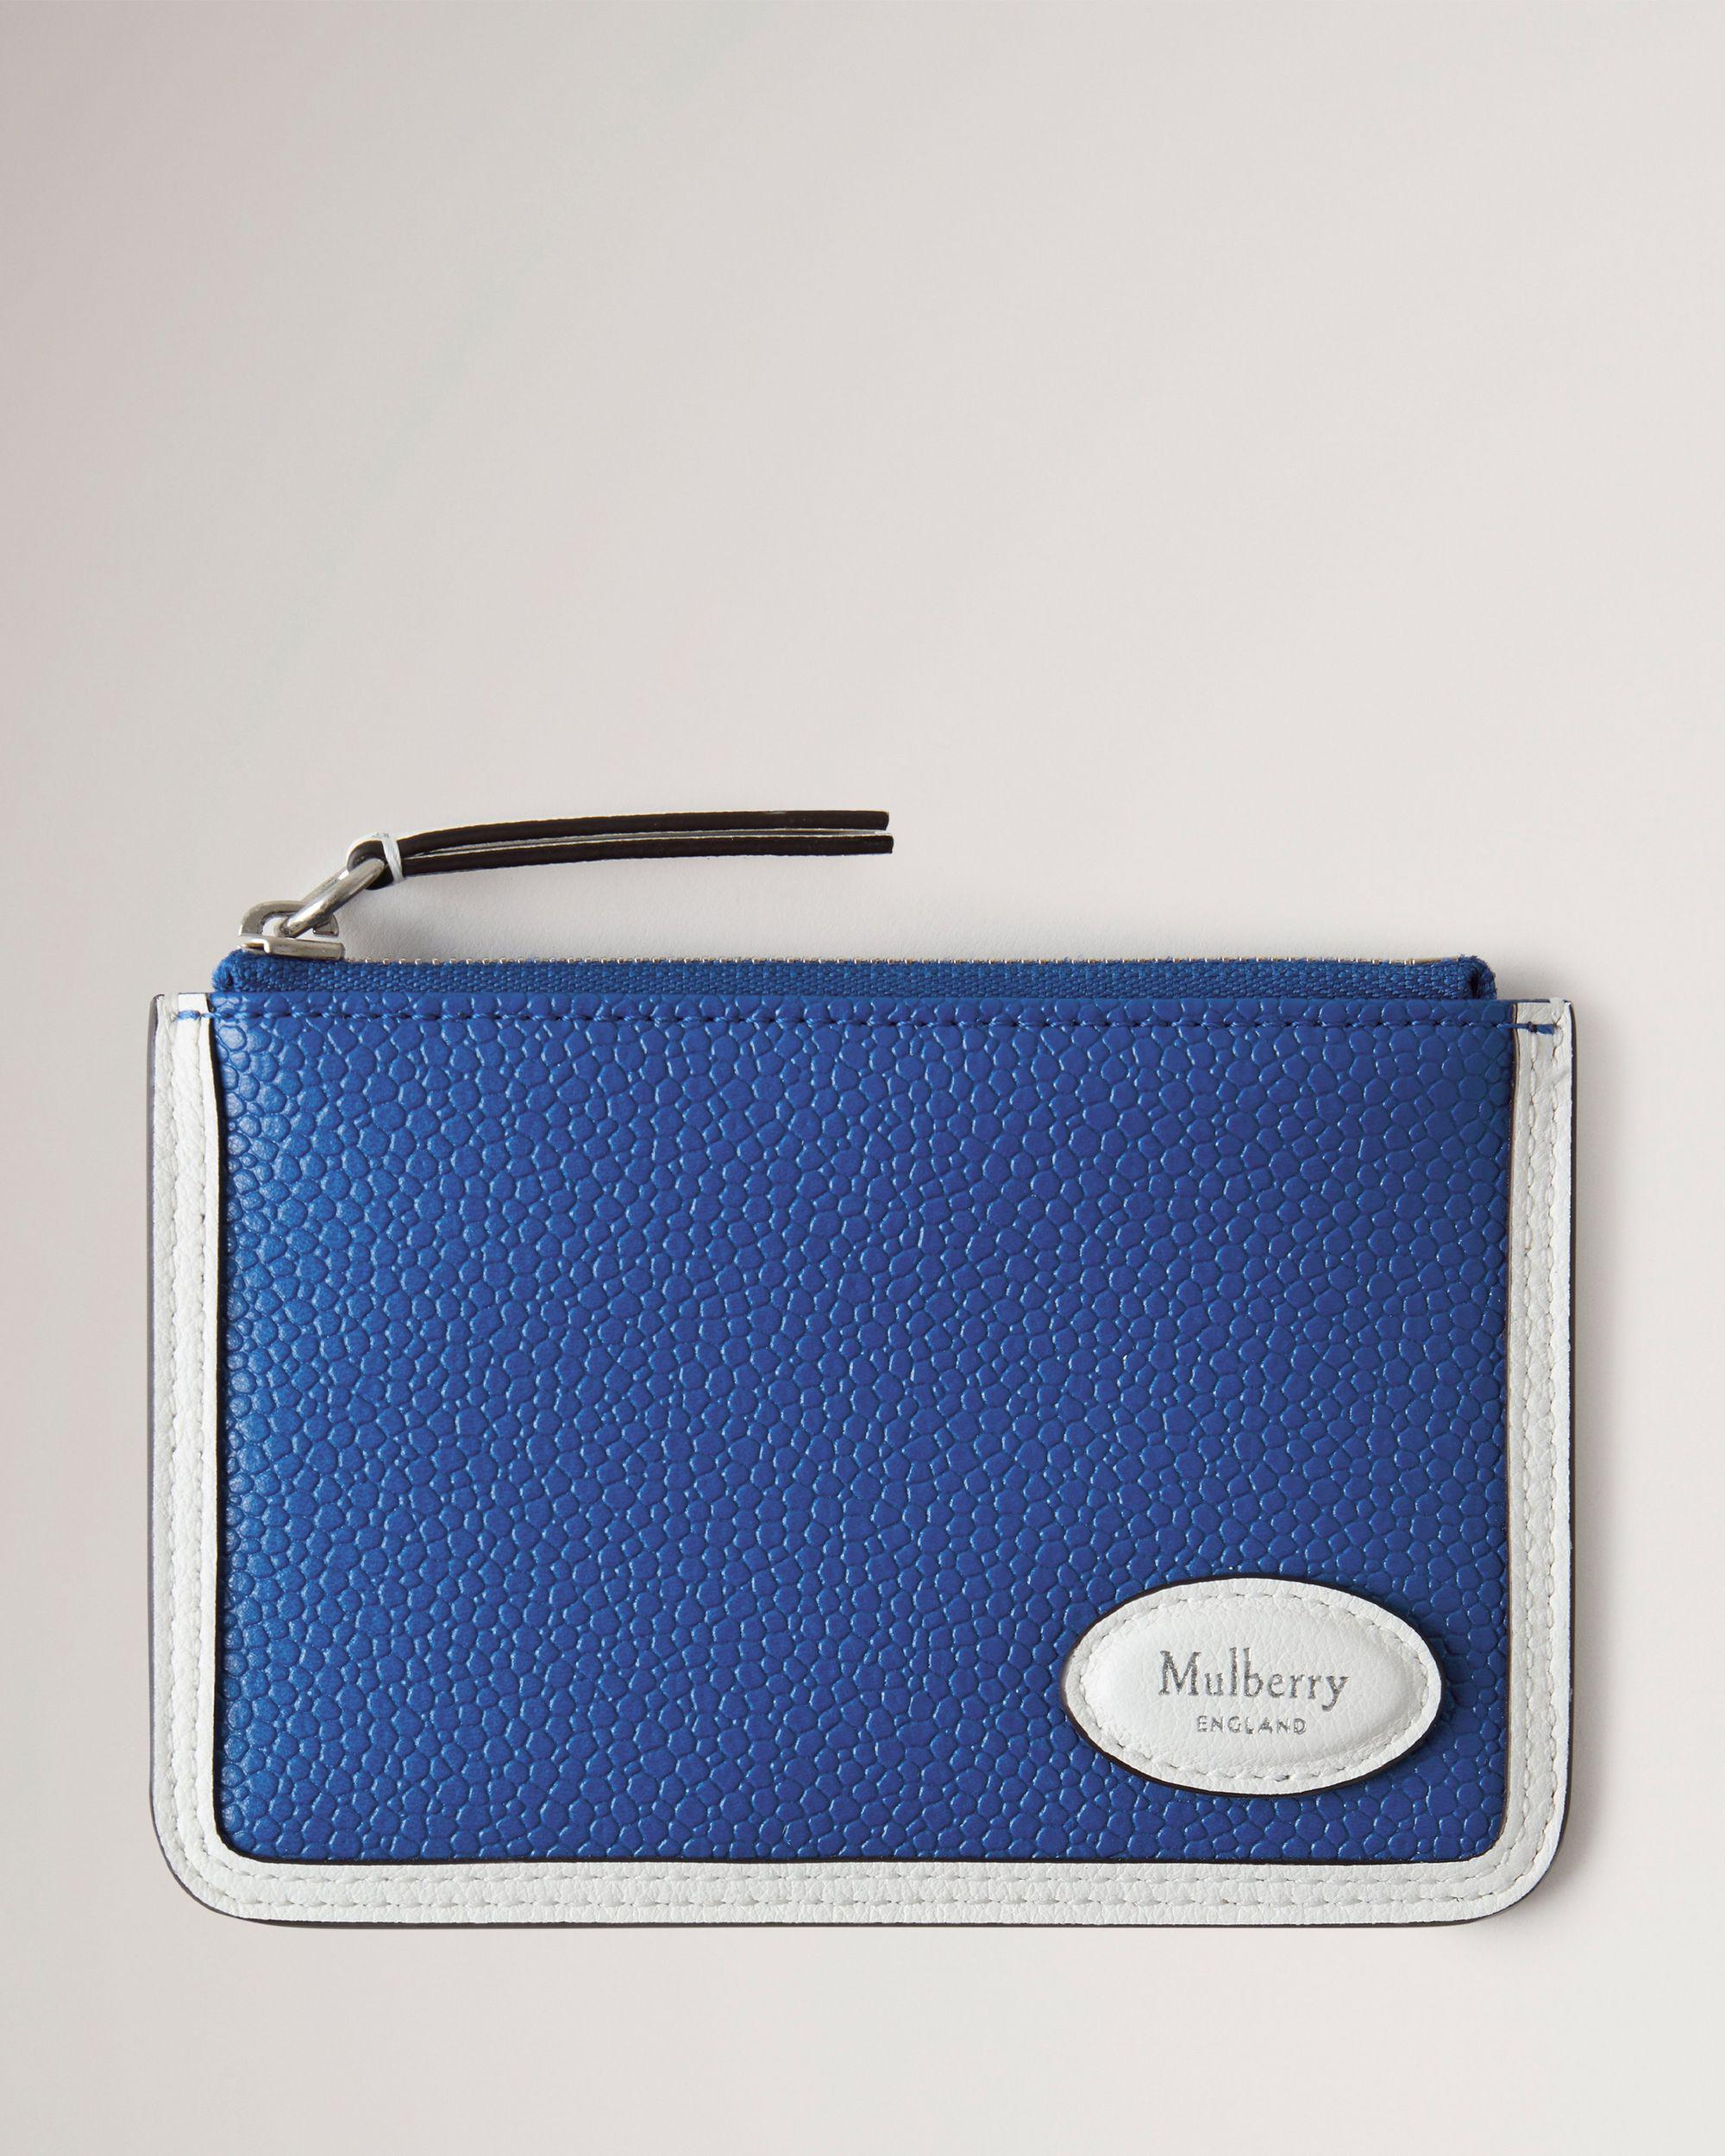 Mulberry x Richard Malone – Coin Pouch